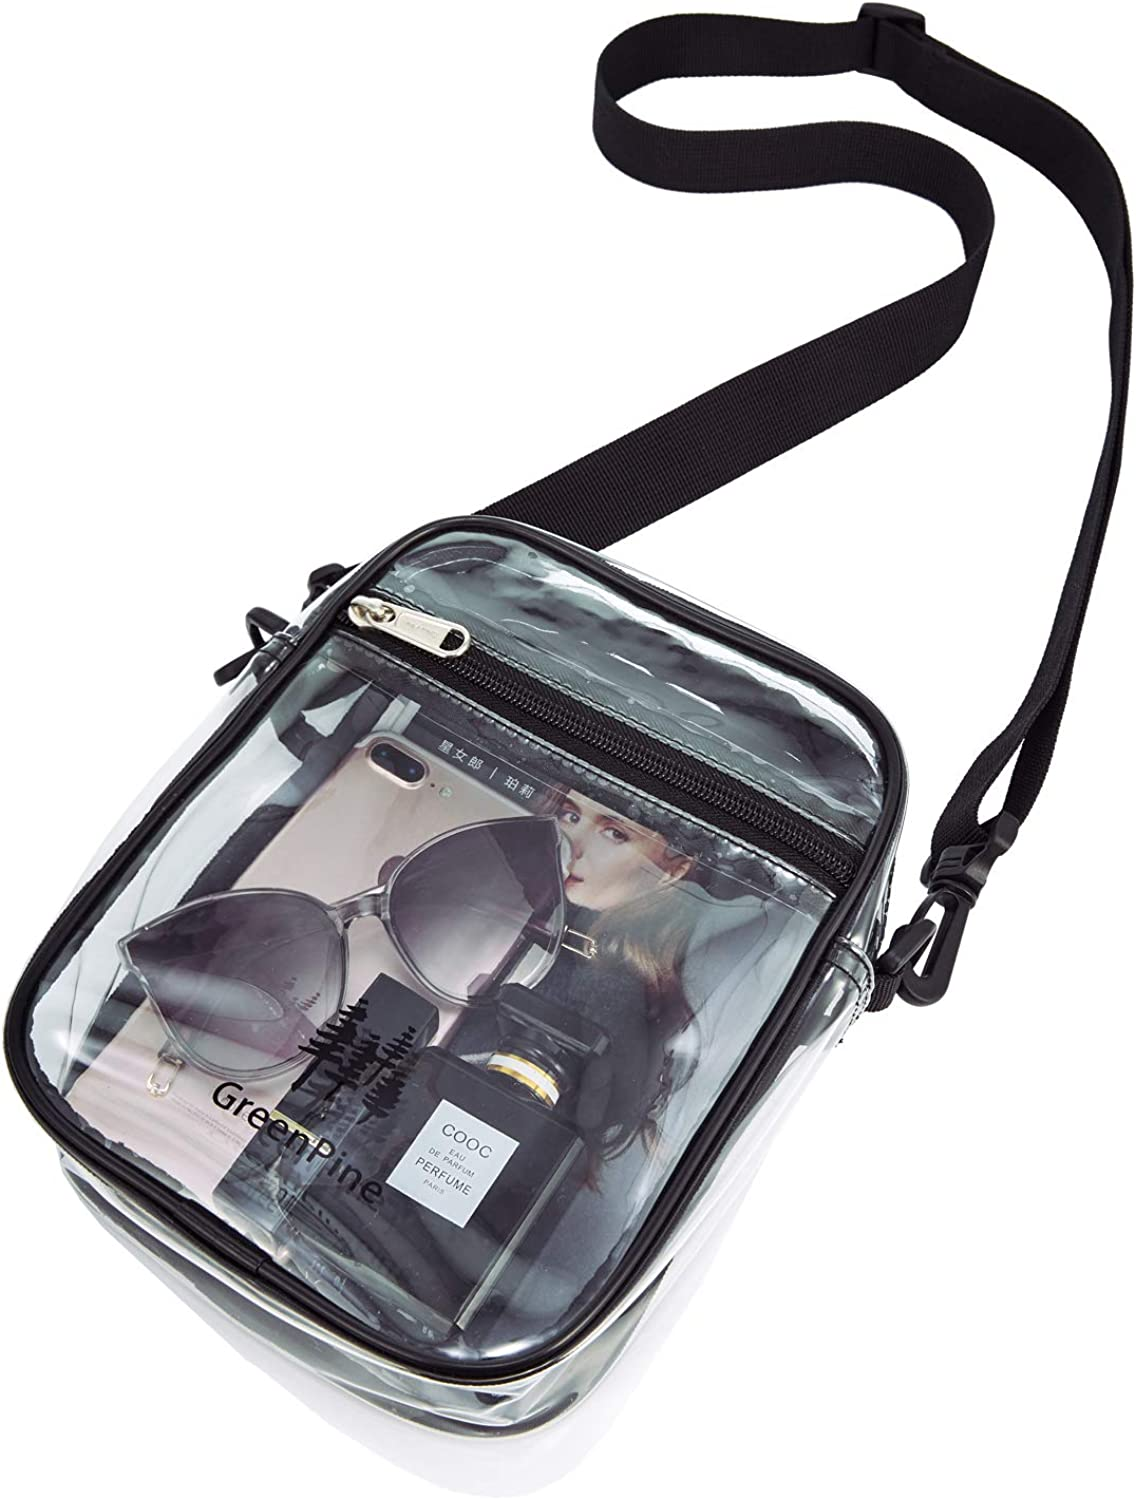 Clear Messenger Bag for Work & Business Travel for Men & Women,NFL Stadium Approved - Transparent Cross-Body Shoulder Bag for Security & Sporting Event (B-Small)